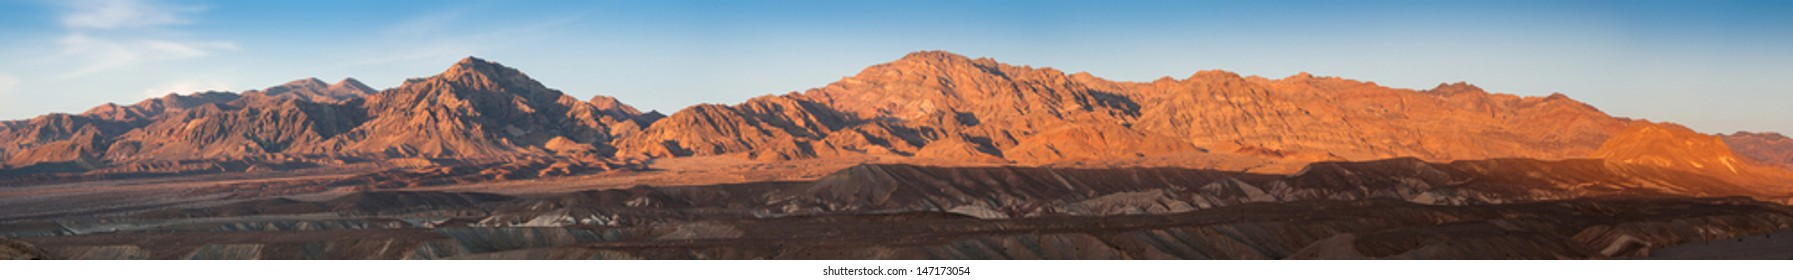 Panoramic view at hills lighted by sunset light in Death Valley, California, USA